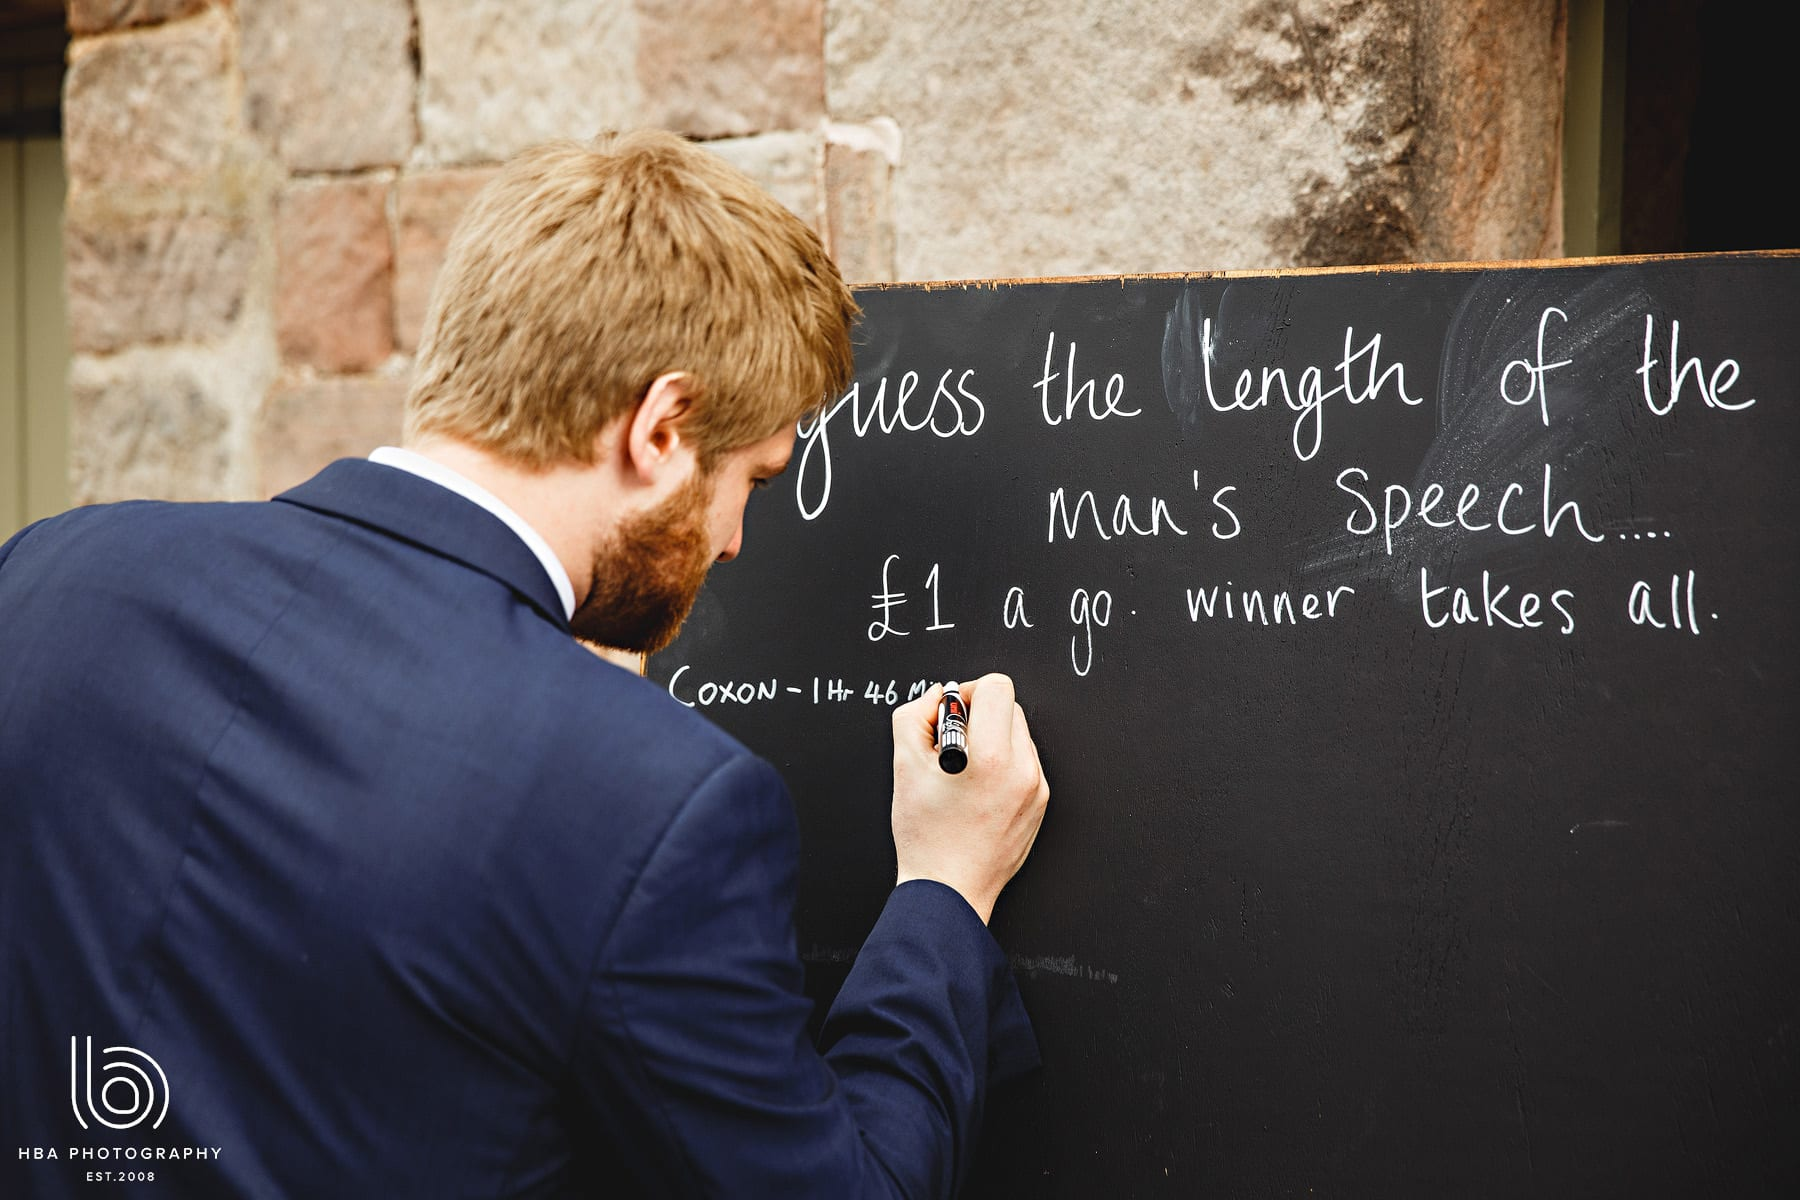 the best man guessing the length of speeches